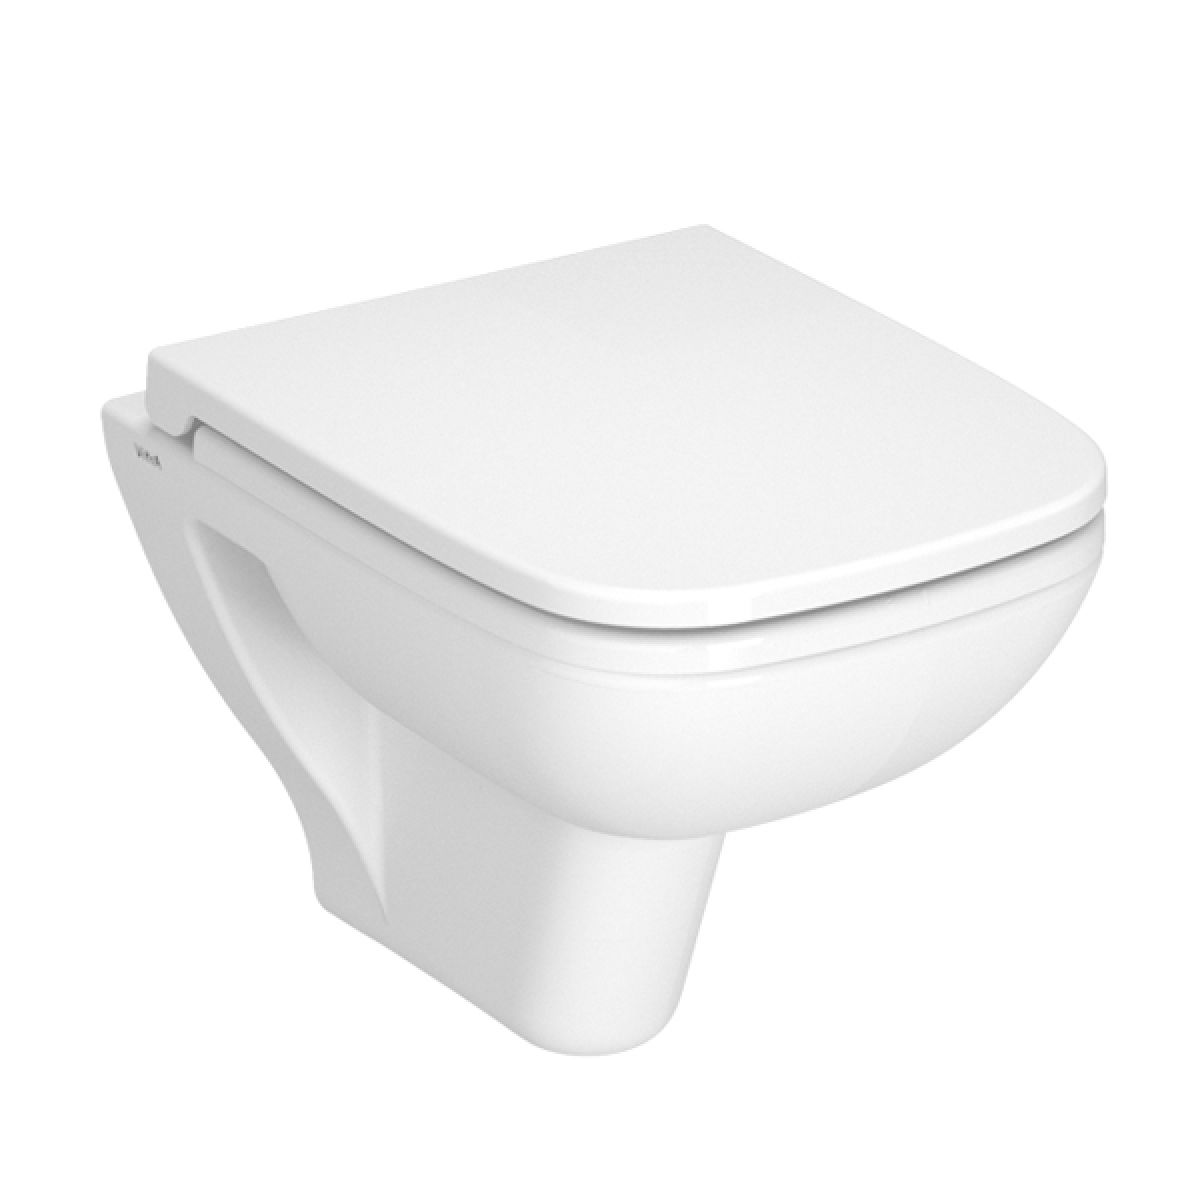 Vitra S20 Short Projection Wall Hung Toilet with Soft Close Seat